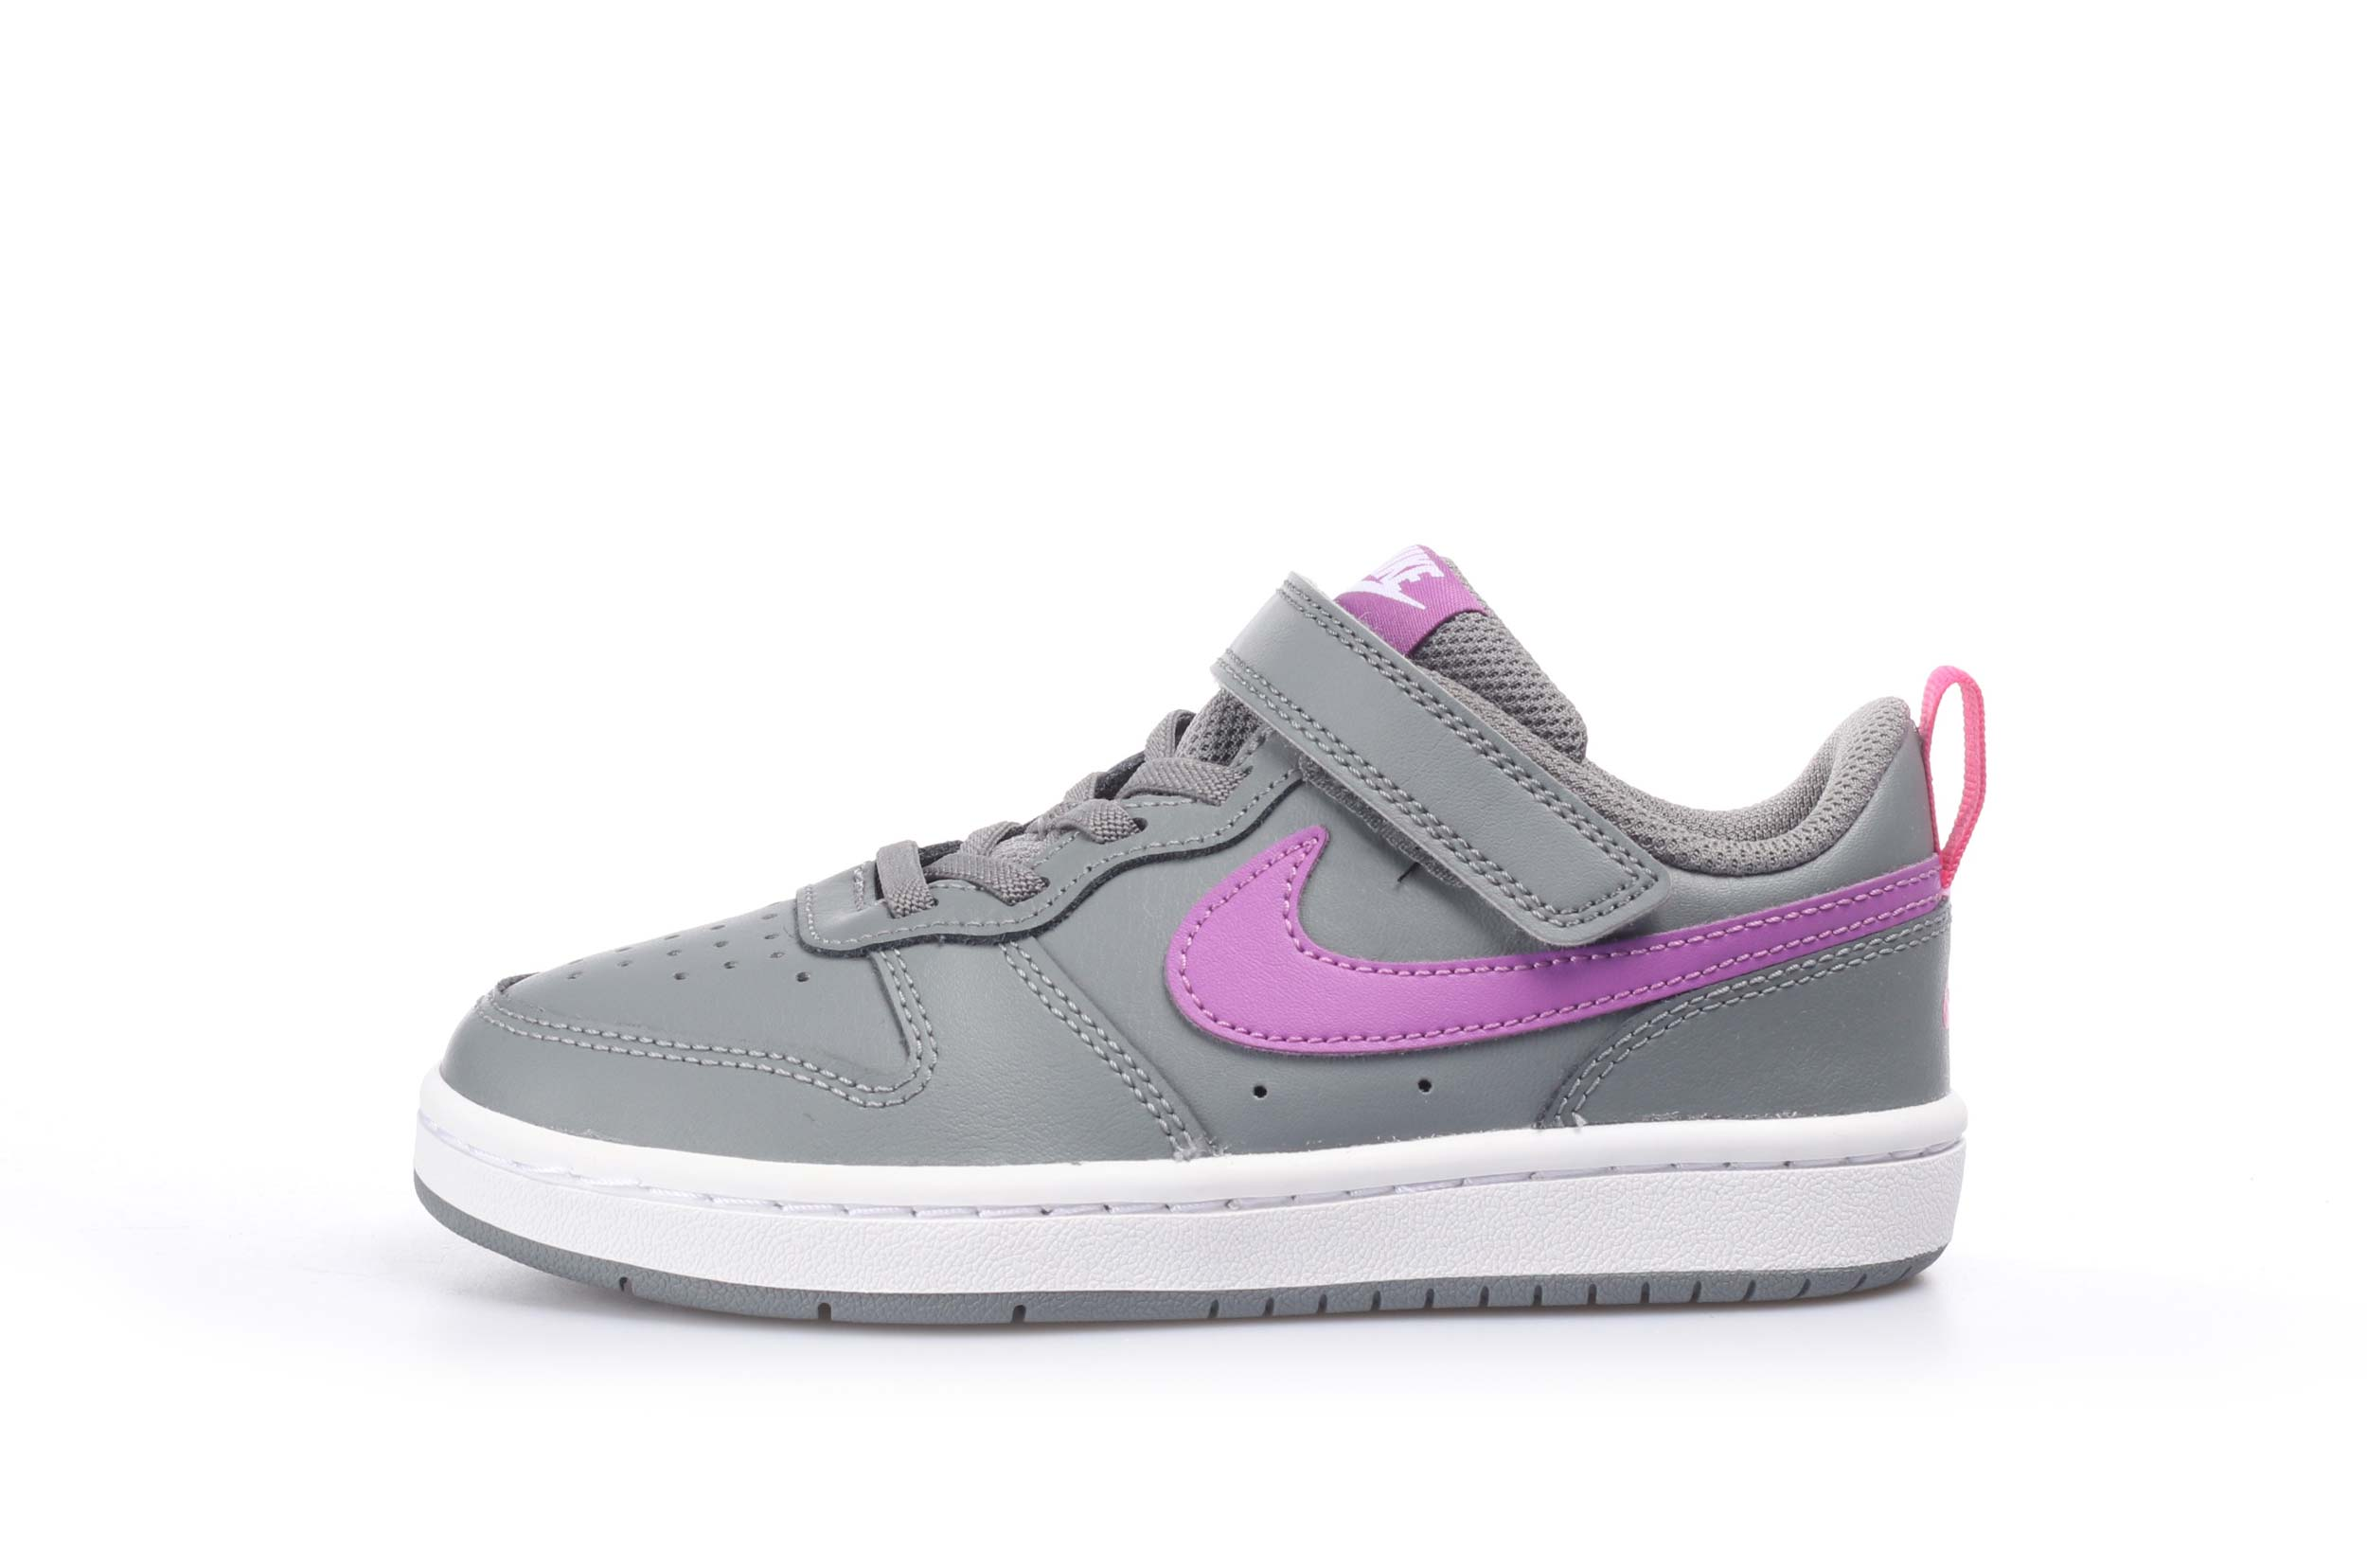 NIKE COURT BOROUGH LOW 2 BQ5451-006 Ανθρακί